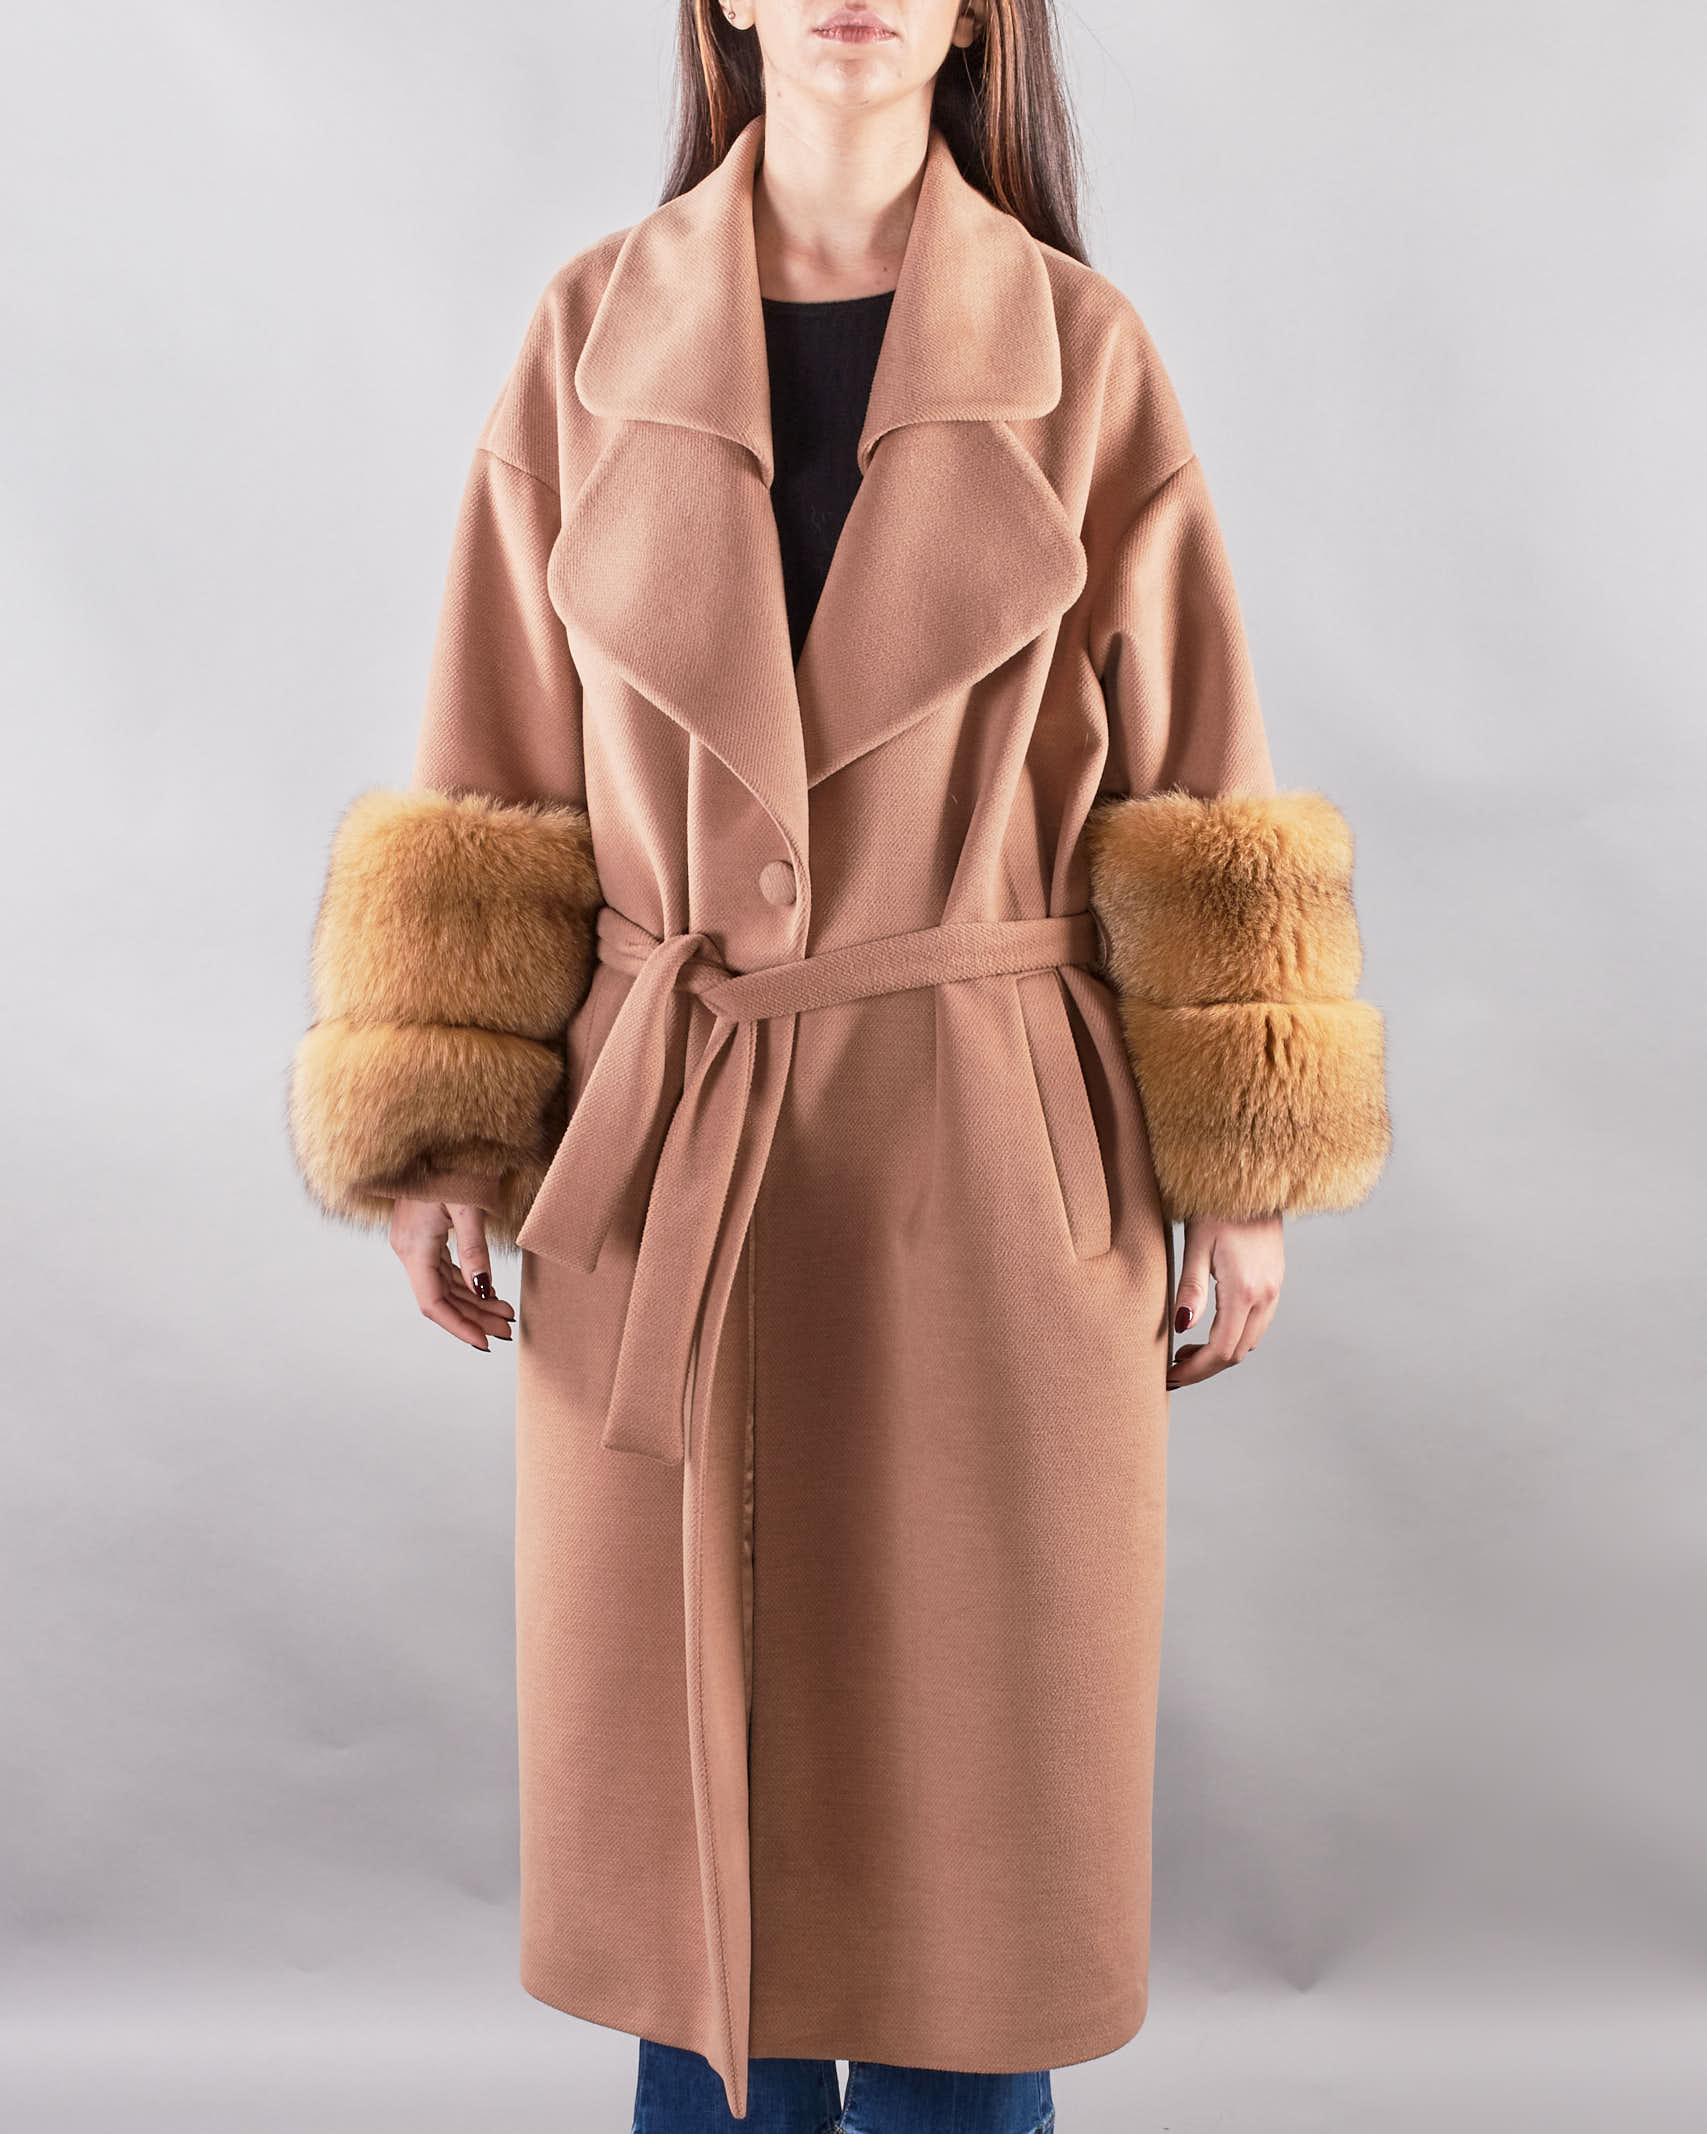 Cappotto con maniche in volpe Yes London YES LONDON   Cappotto   YL0120CAMMELLO